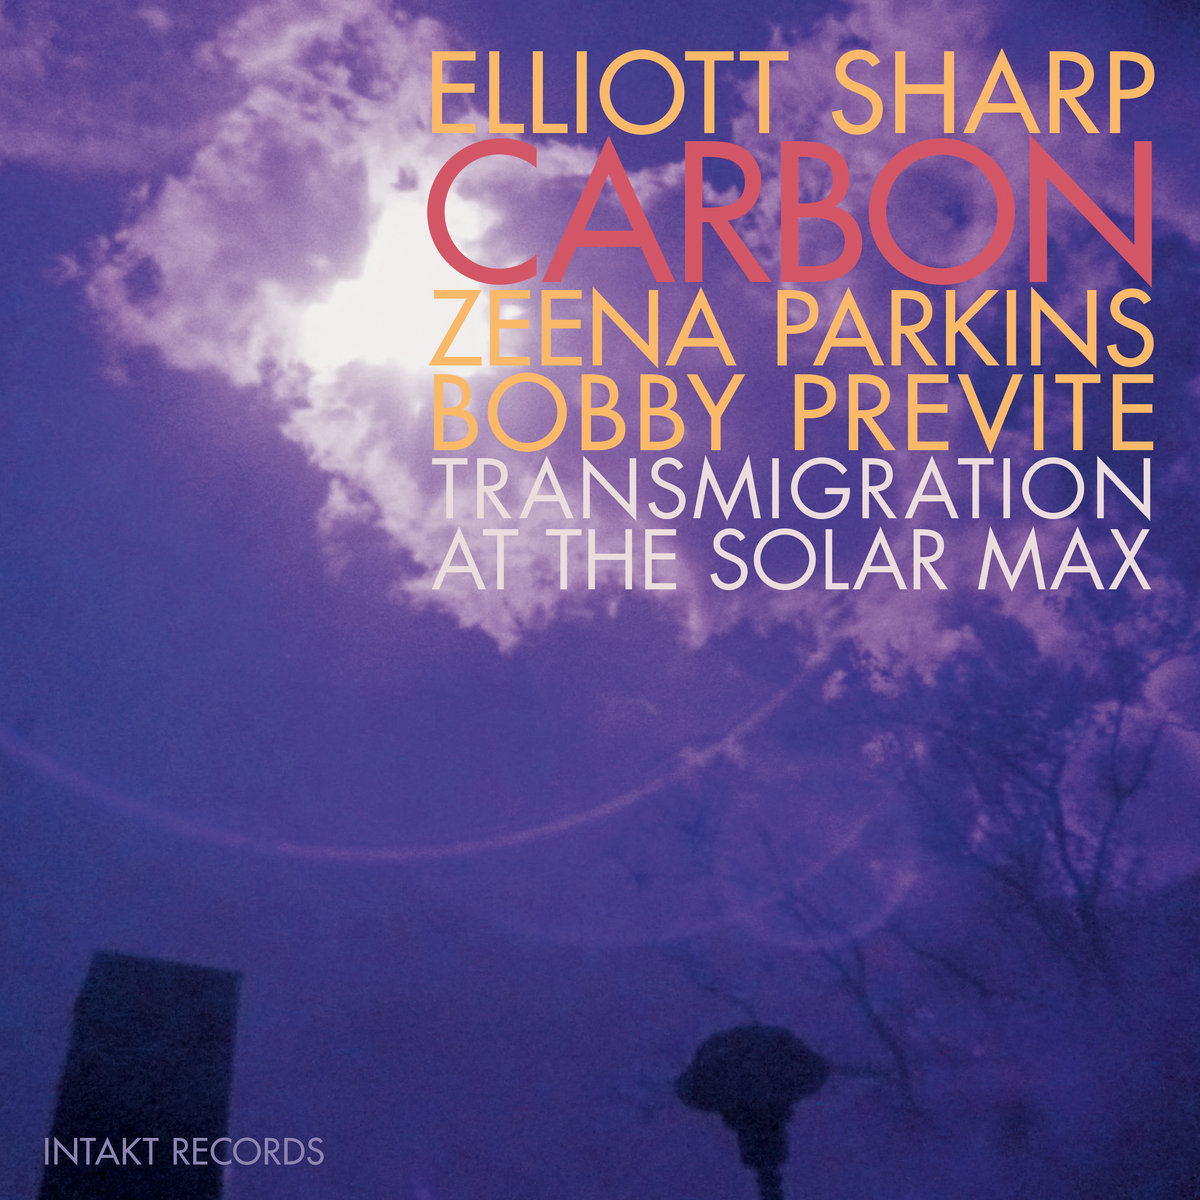 Review of Elliott Sharp Carbon: Transmigration At The Solar Max